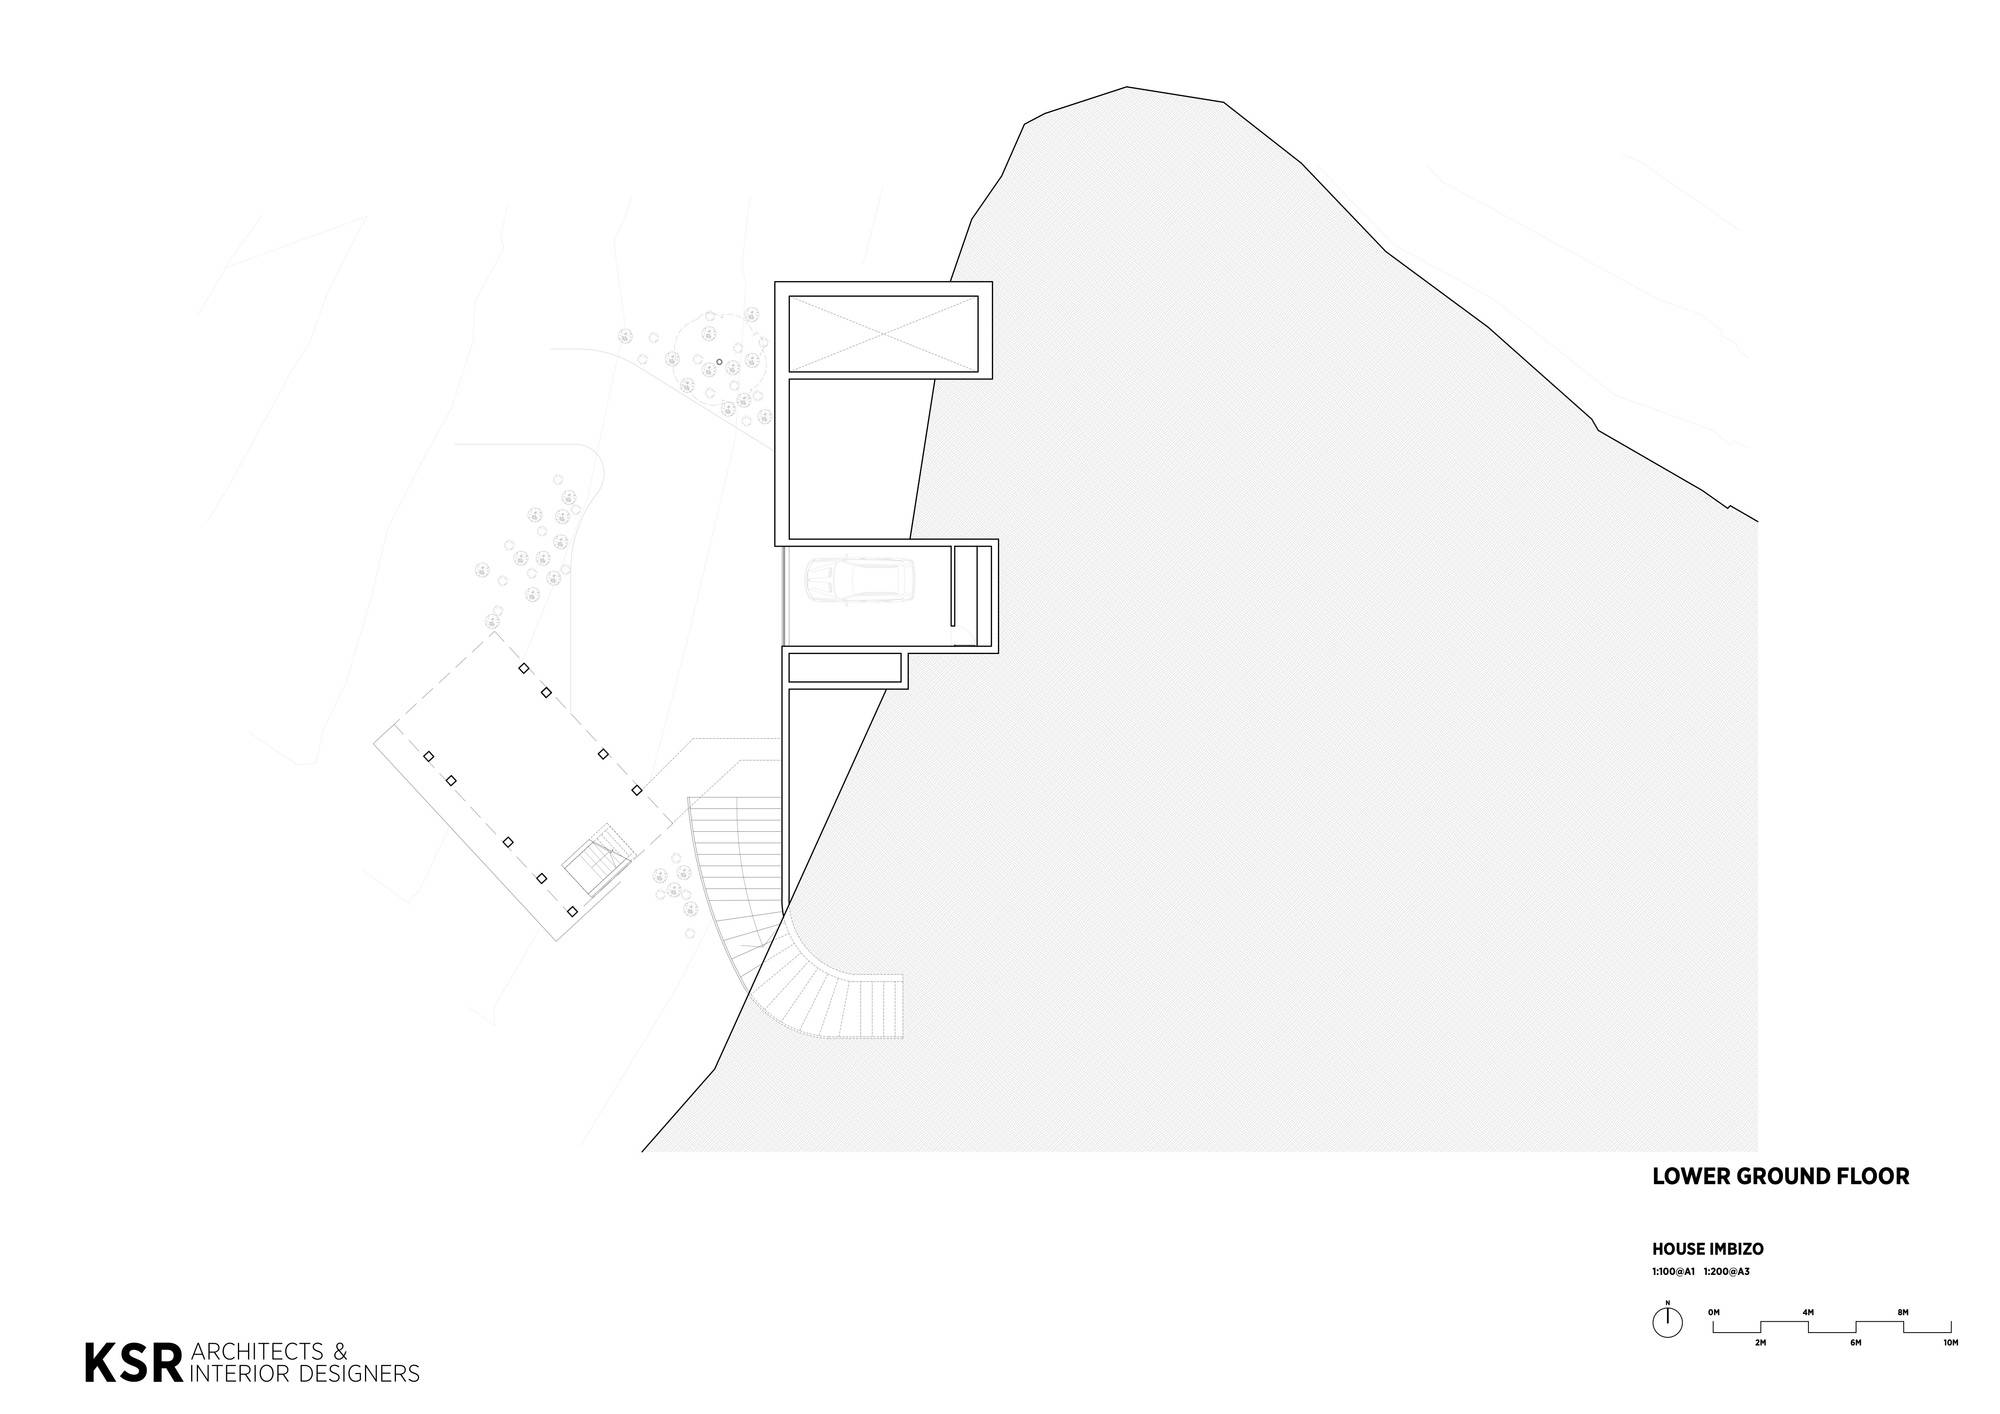 Lower ground floor plan of Imbizo House in South Africa